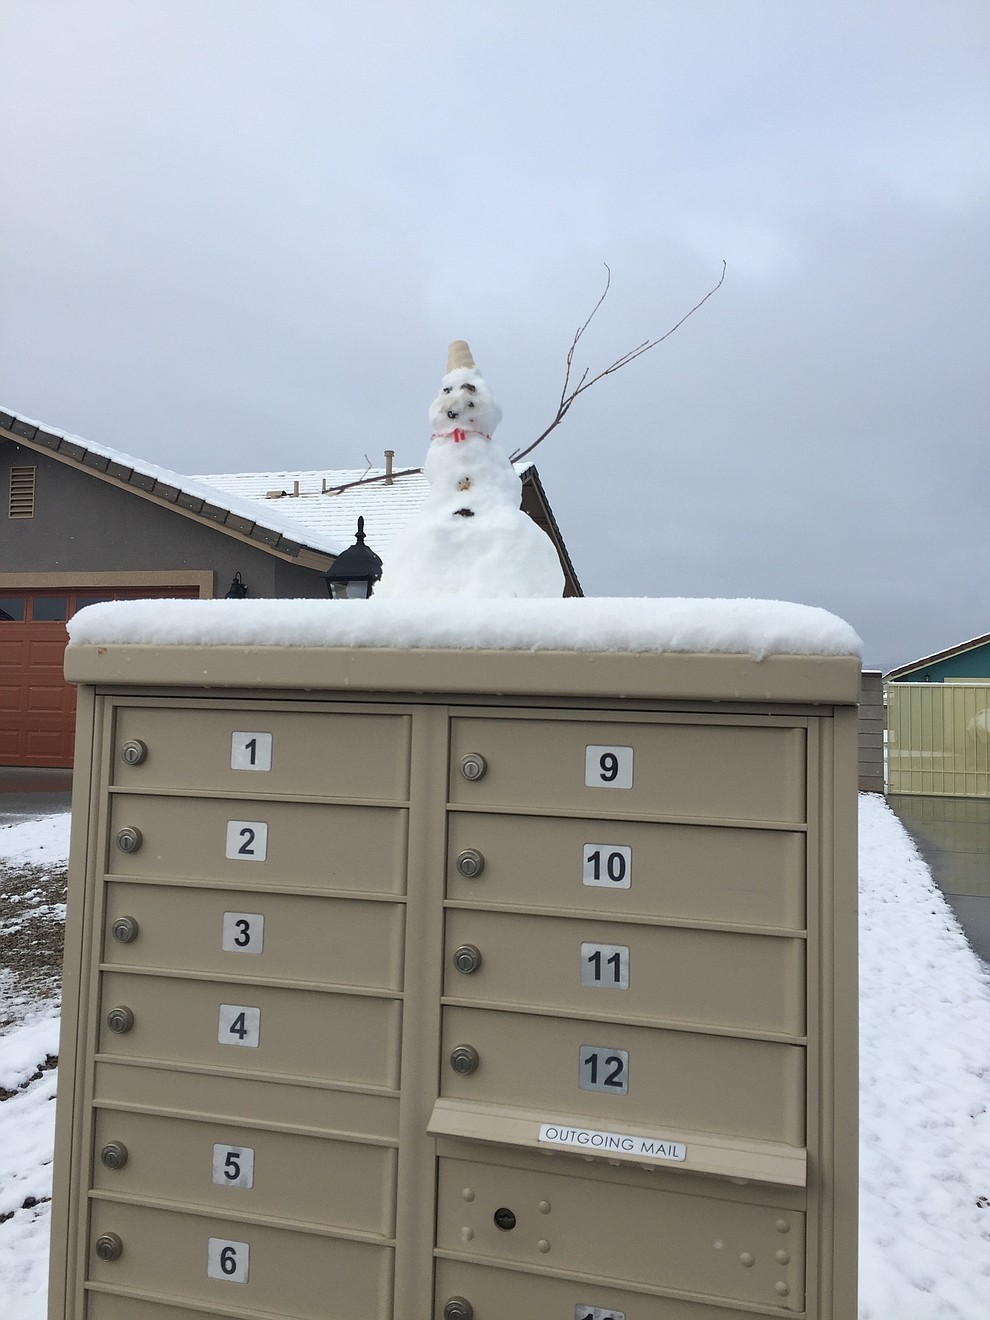 M. Myers and family took time to build a snowman on their mailbox. (Submitted photo by M. Meyers)